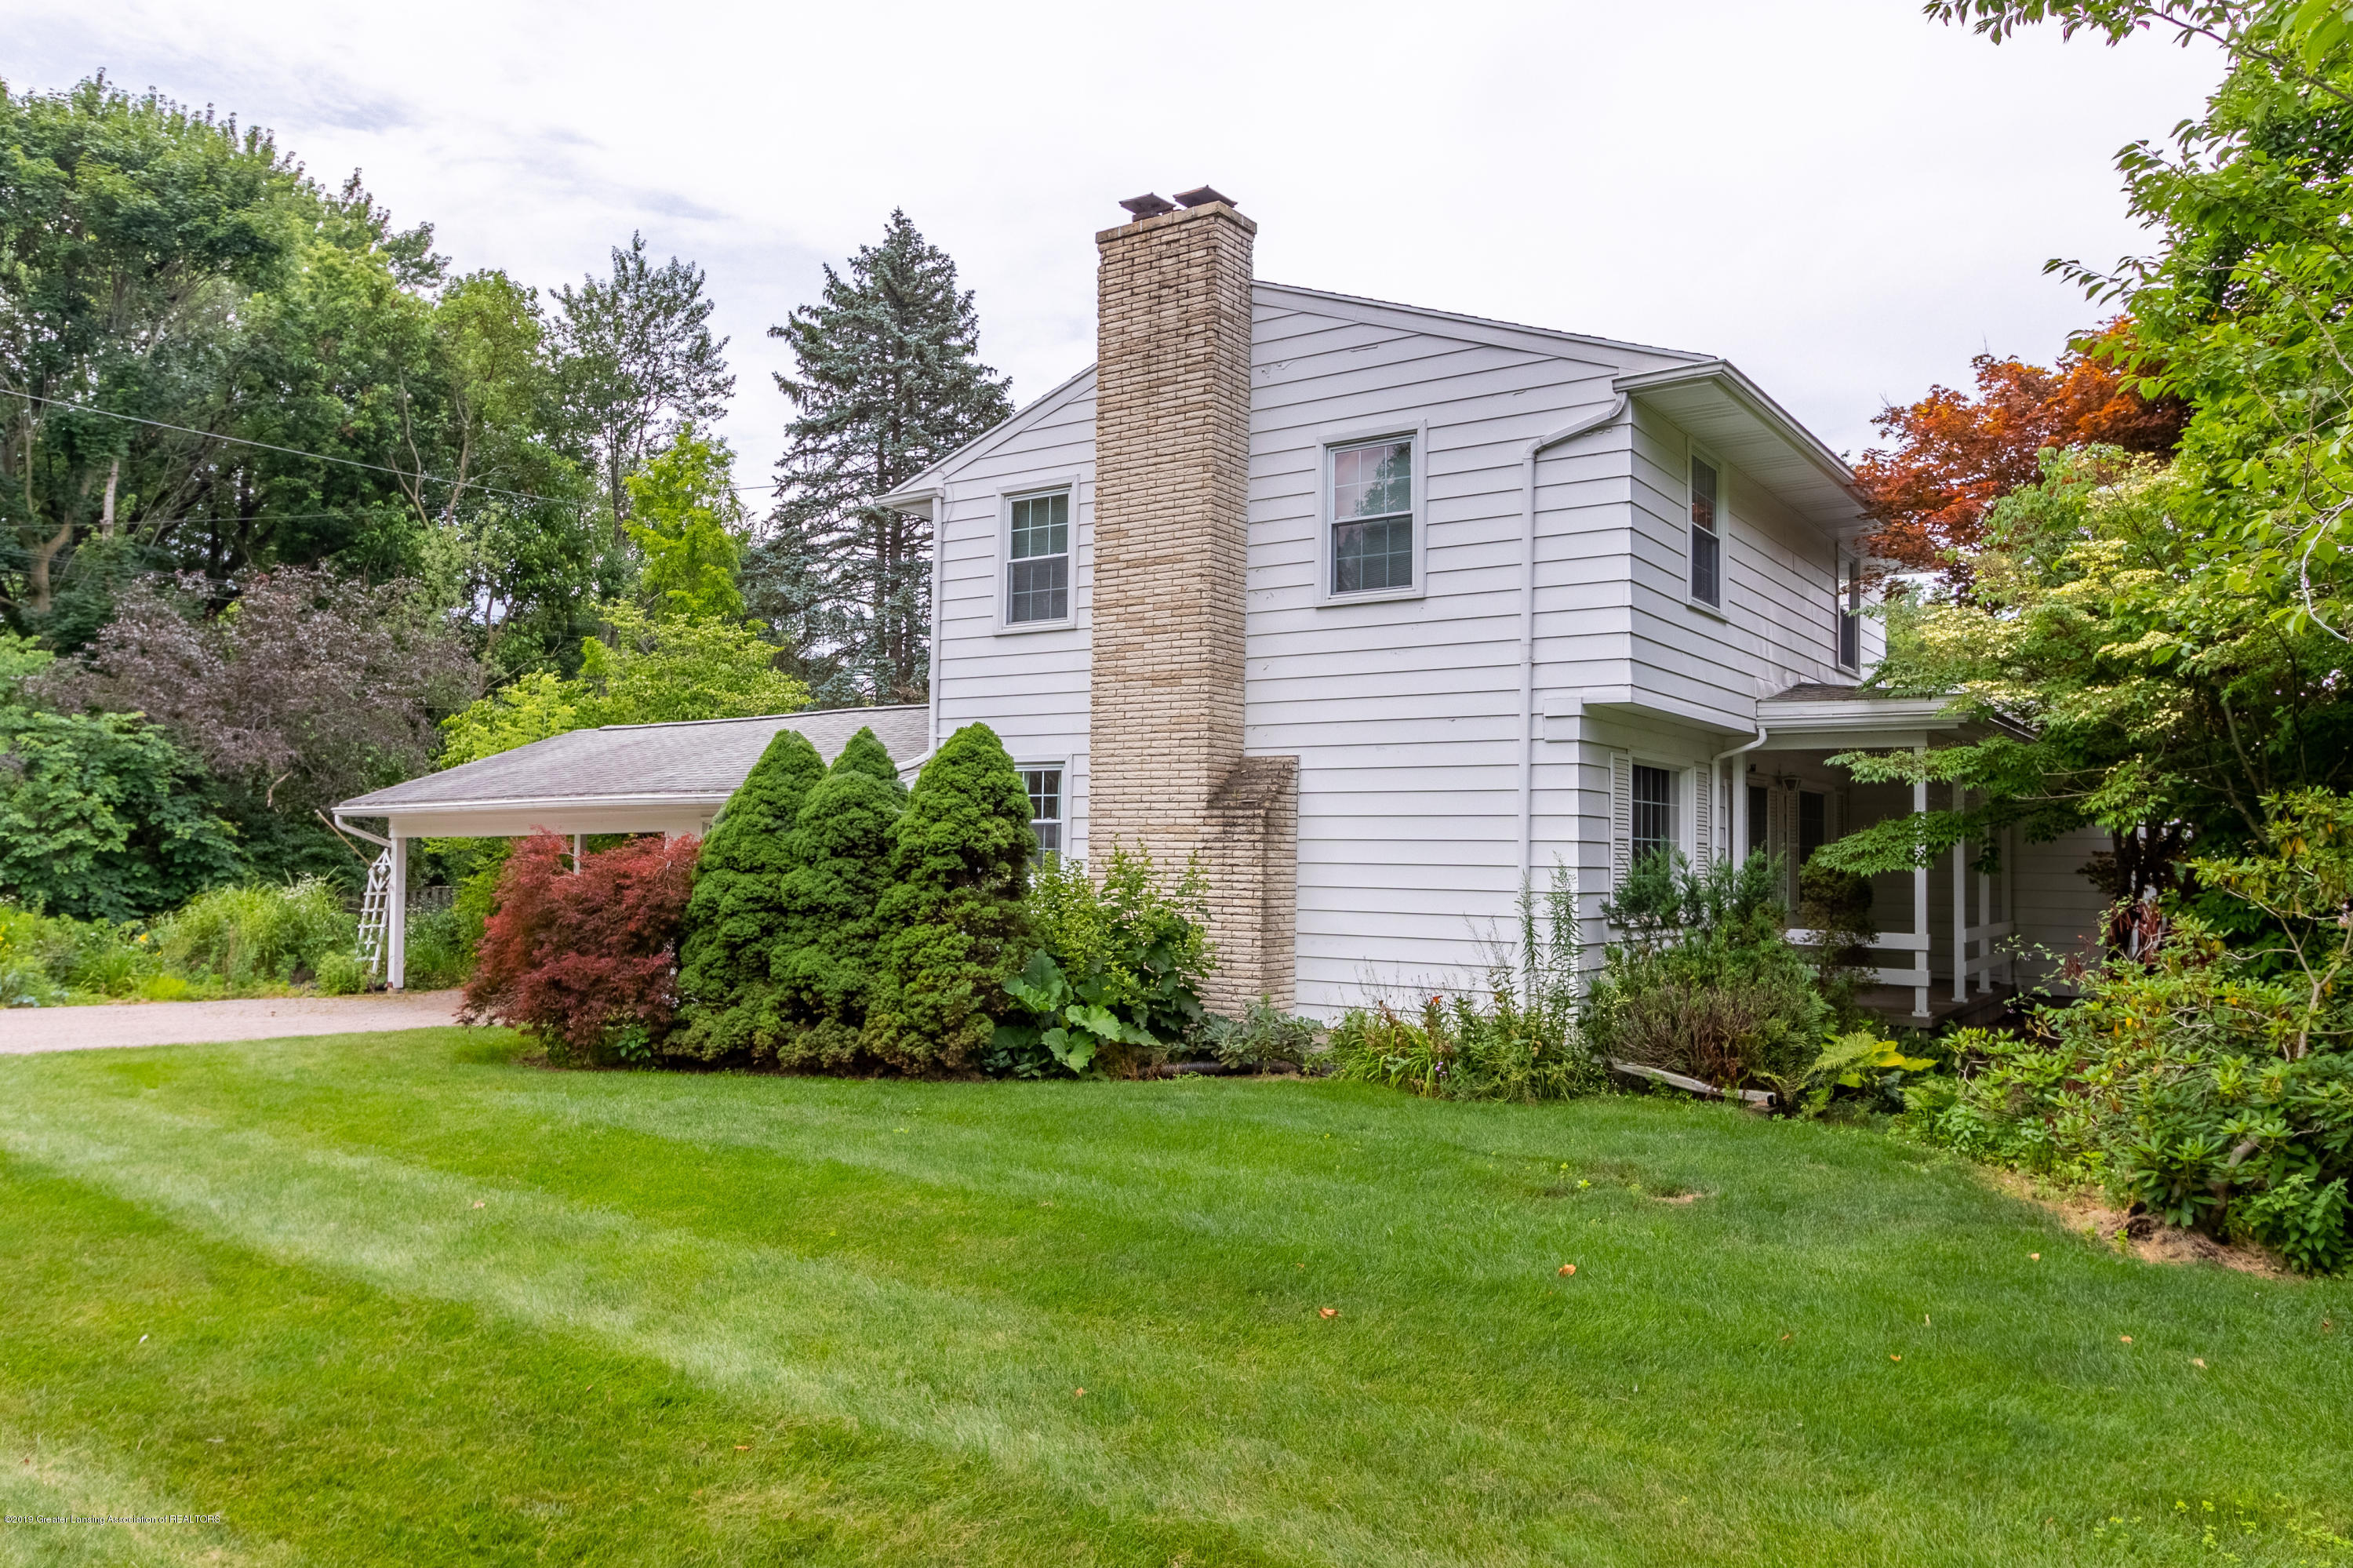 2661 Linden St - Side View - 41